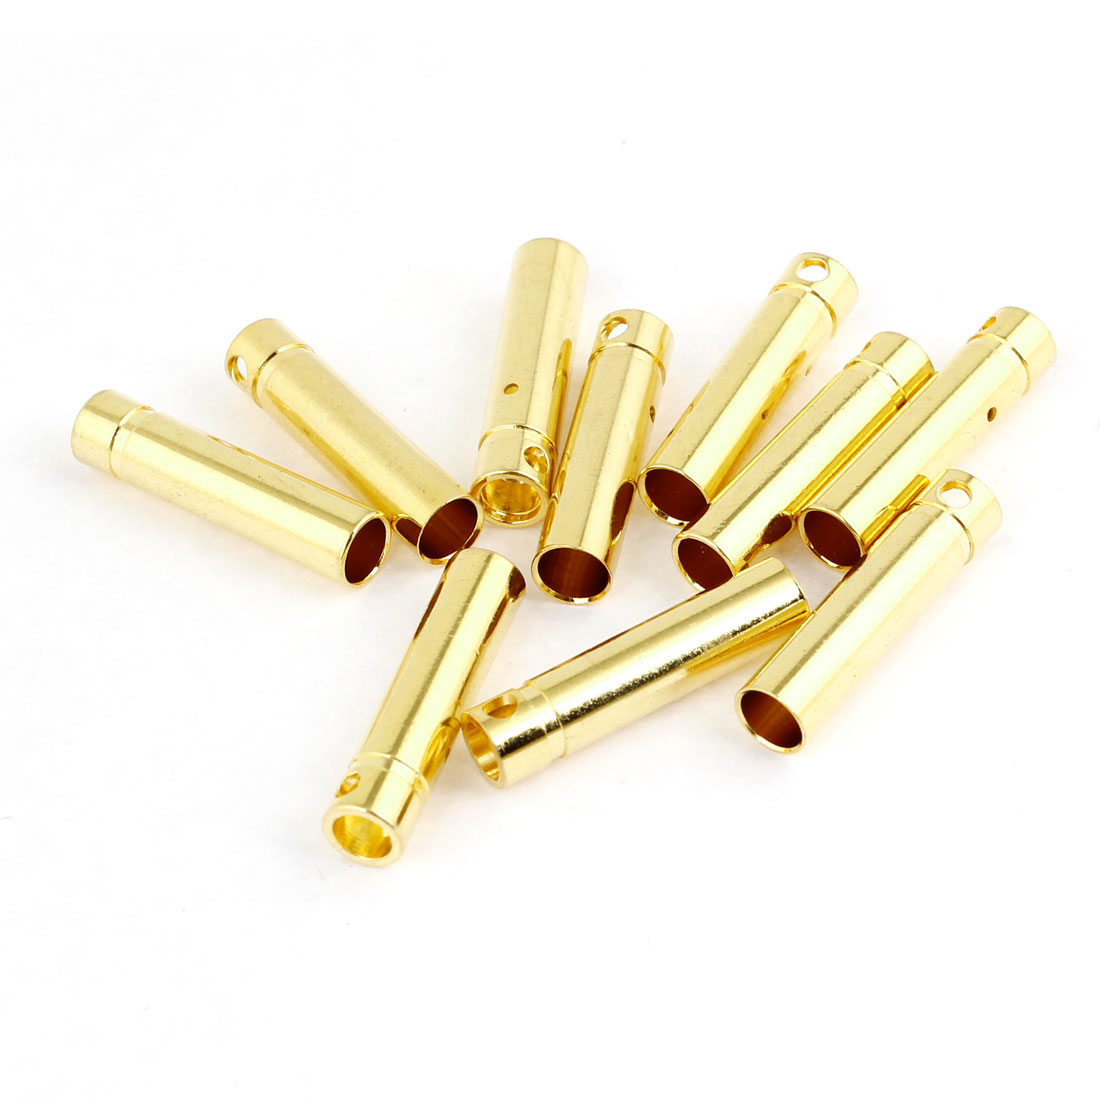 10 Pcs Y403 Gold Tone Metal Plug Female Connector 4mm Diameter